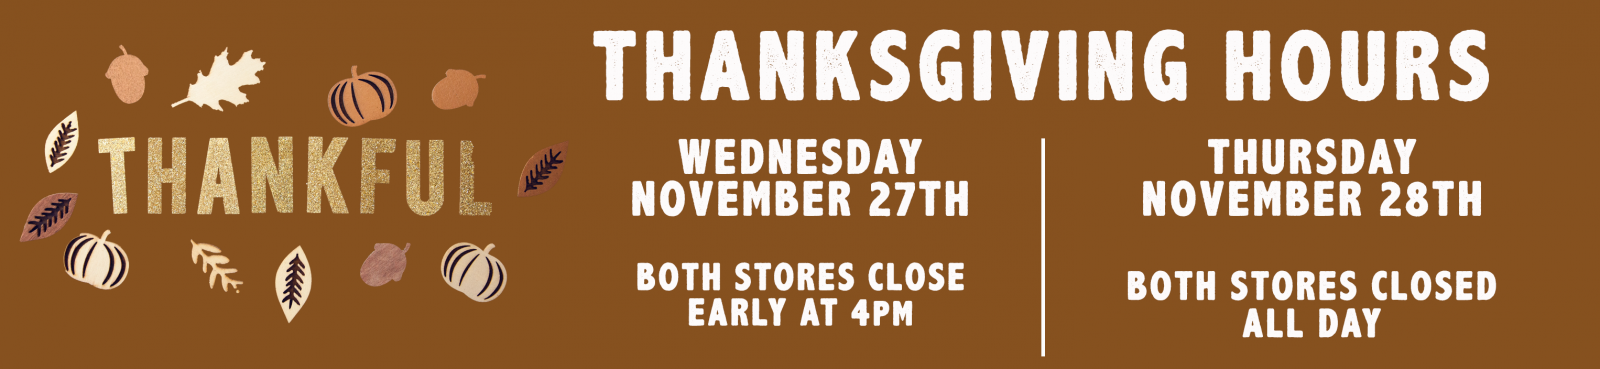 Thanksgiving Hours banner